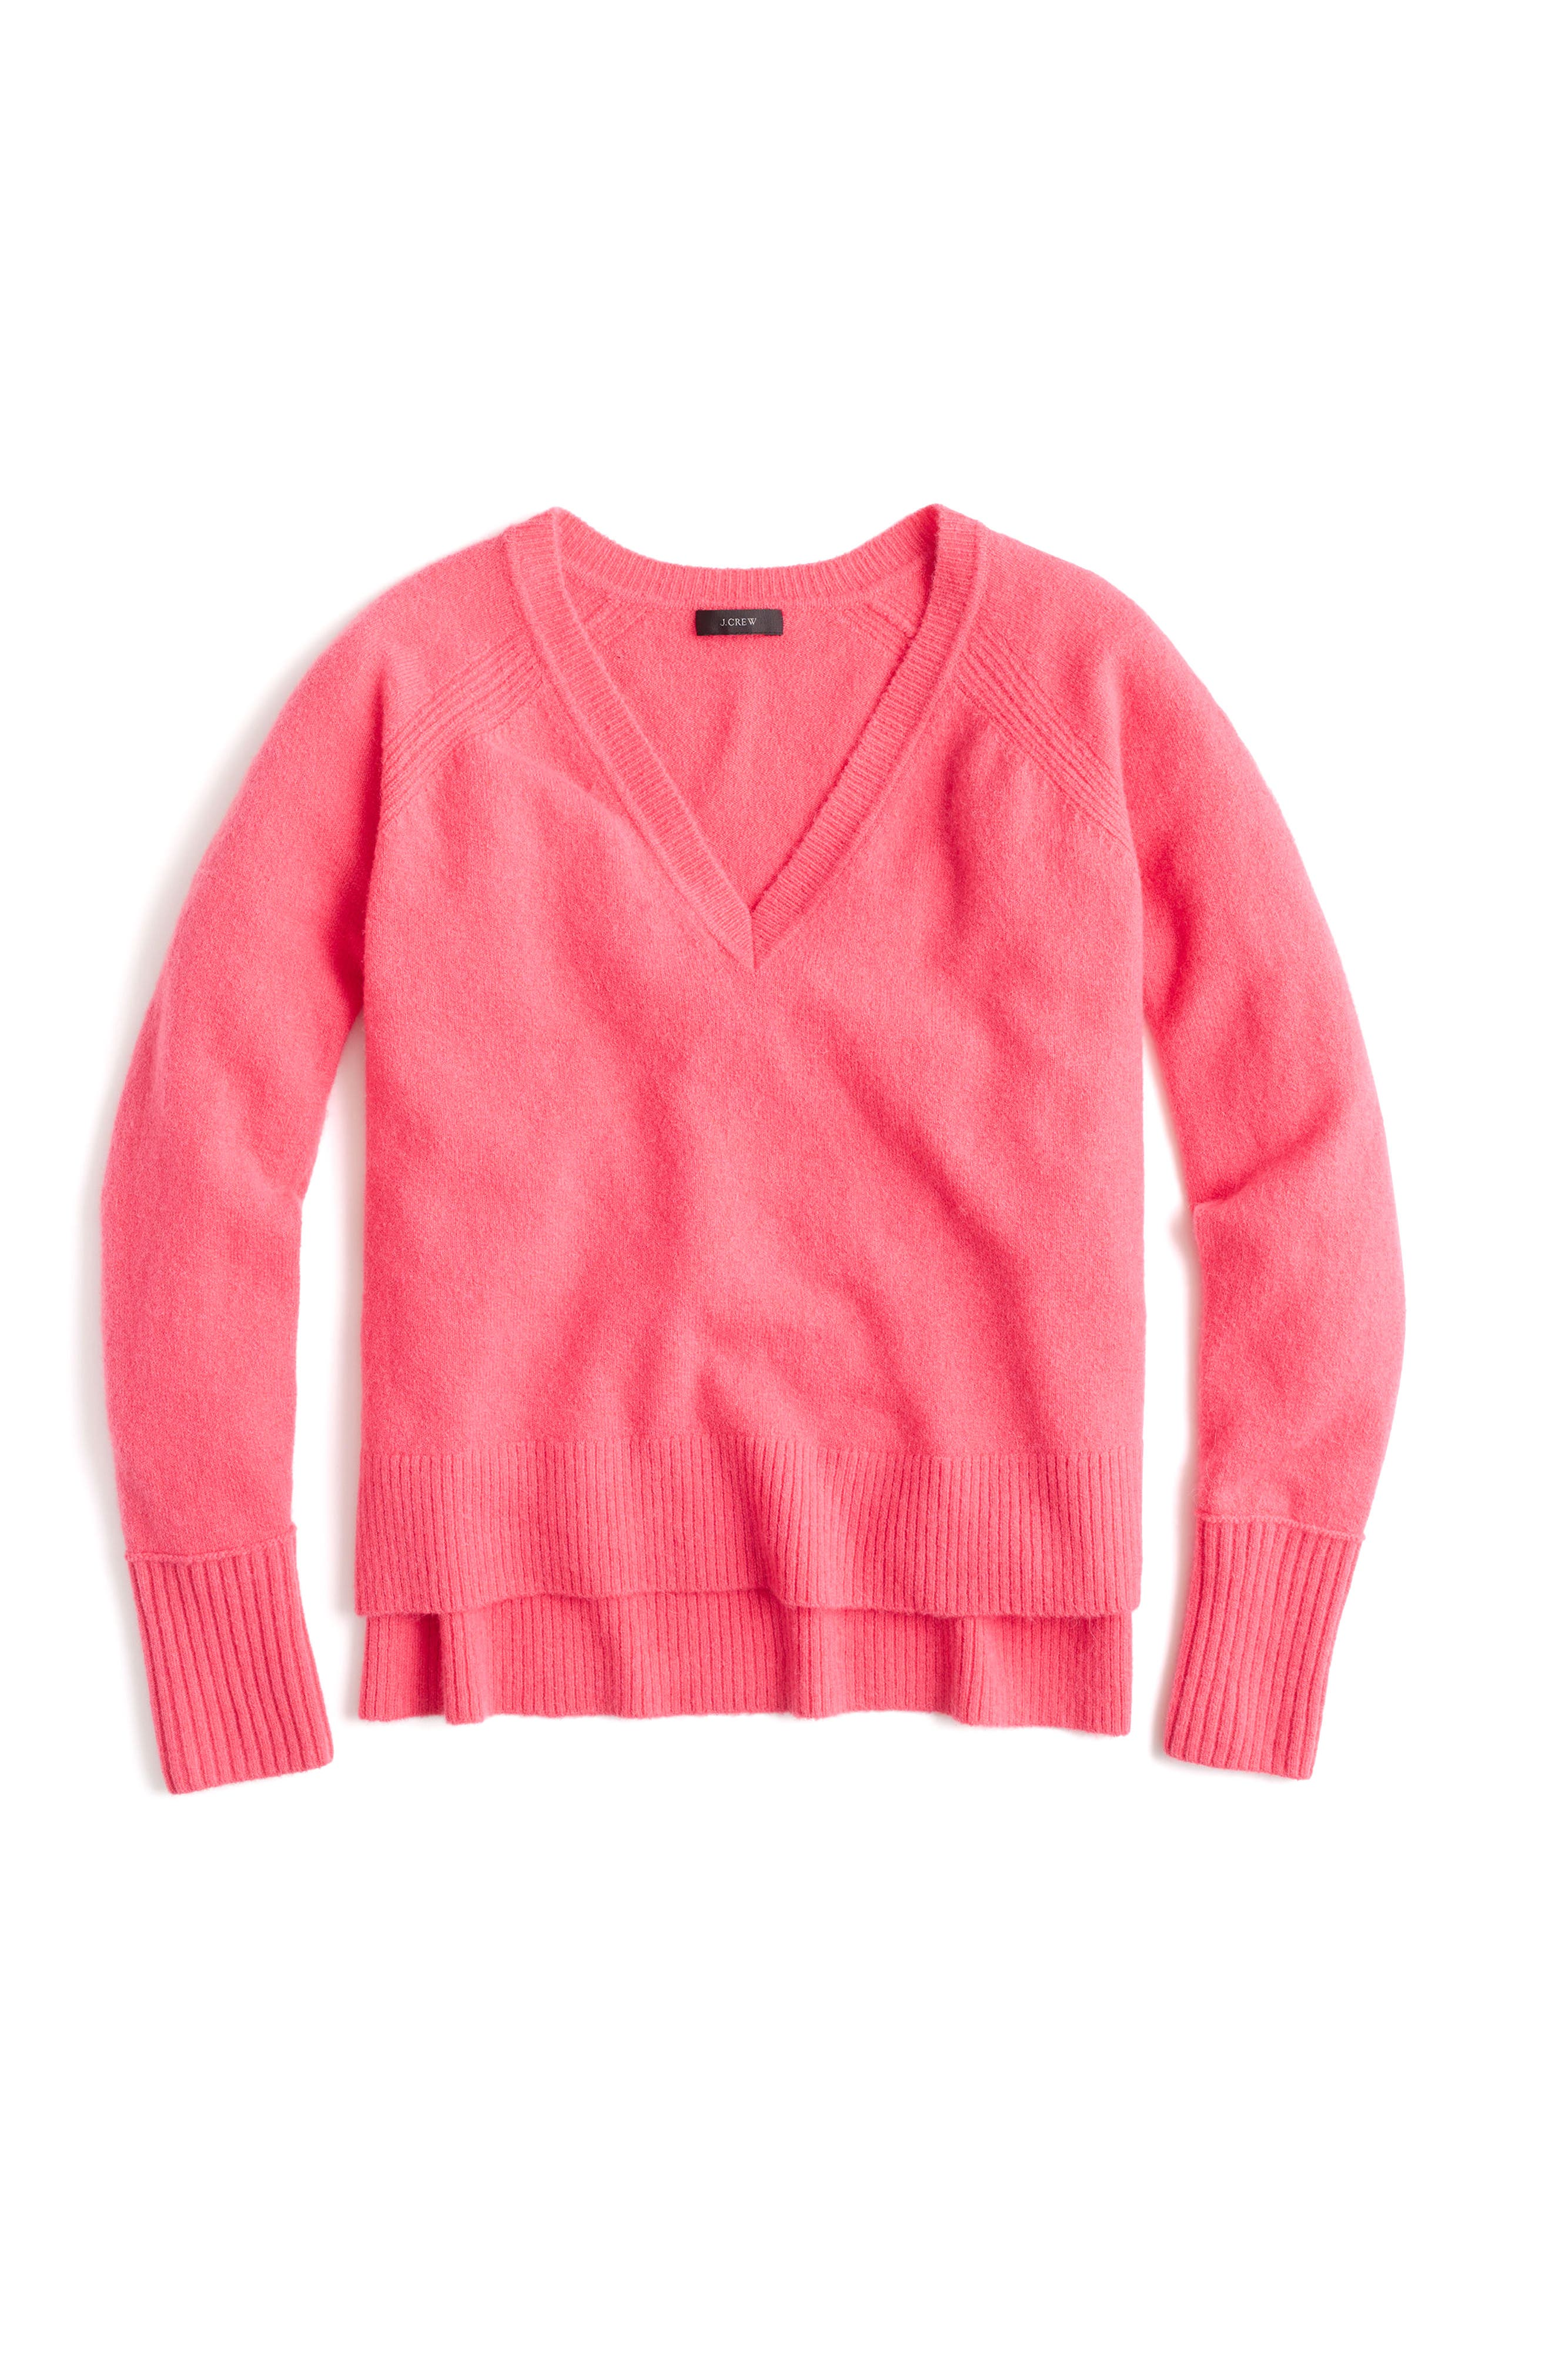 Supersoft Yarn V-Neck Sweater,                             Main thumbnail 1, color,                             605